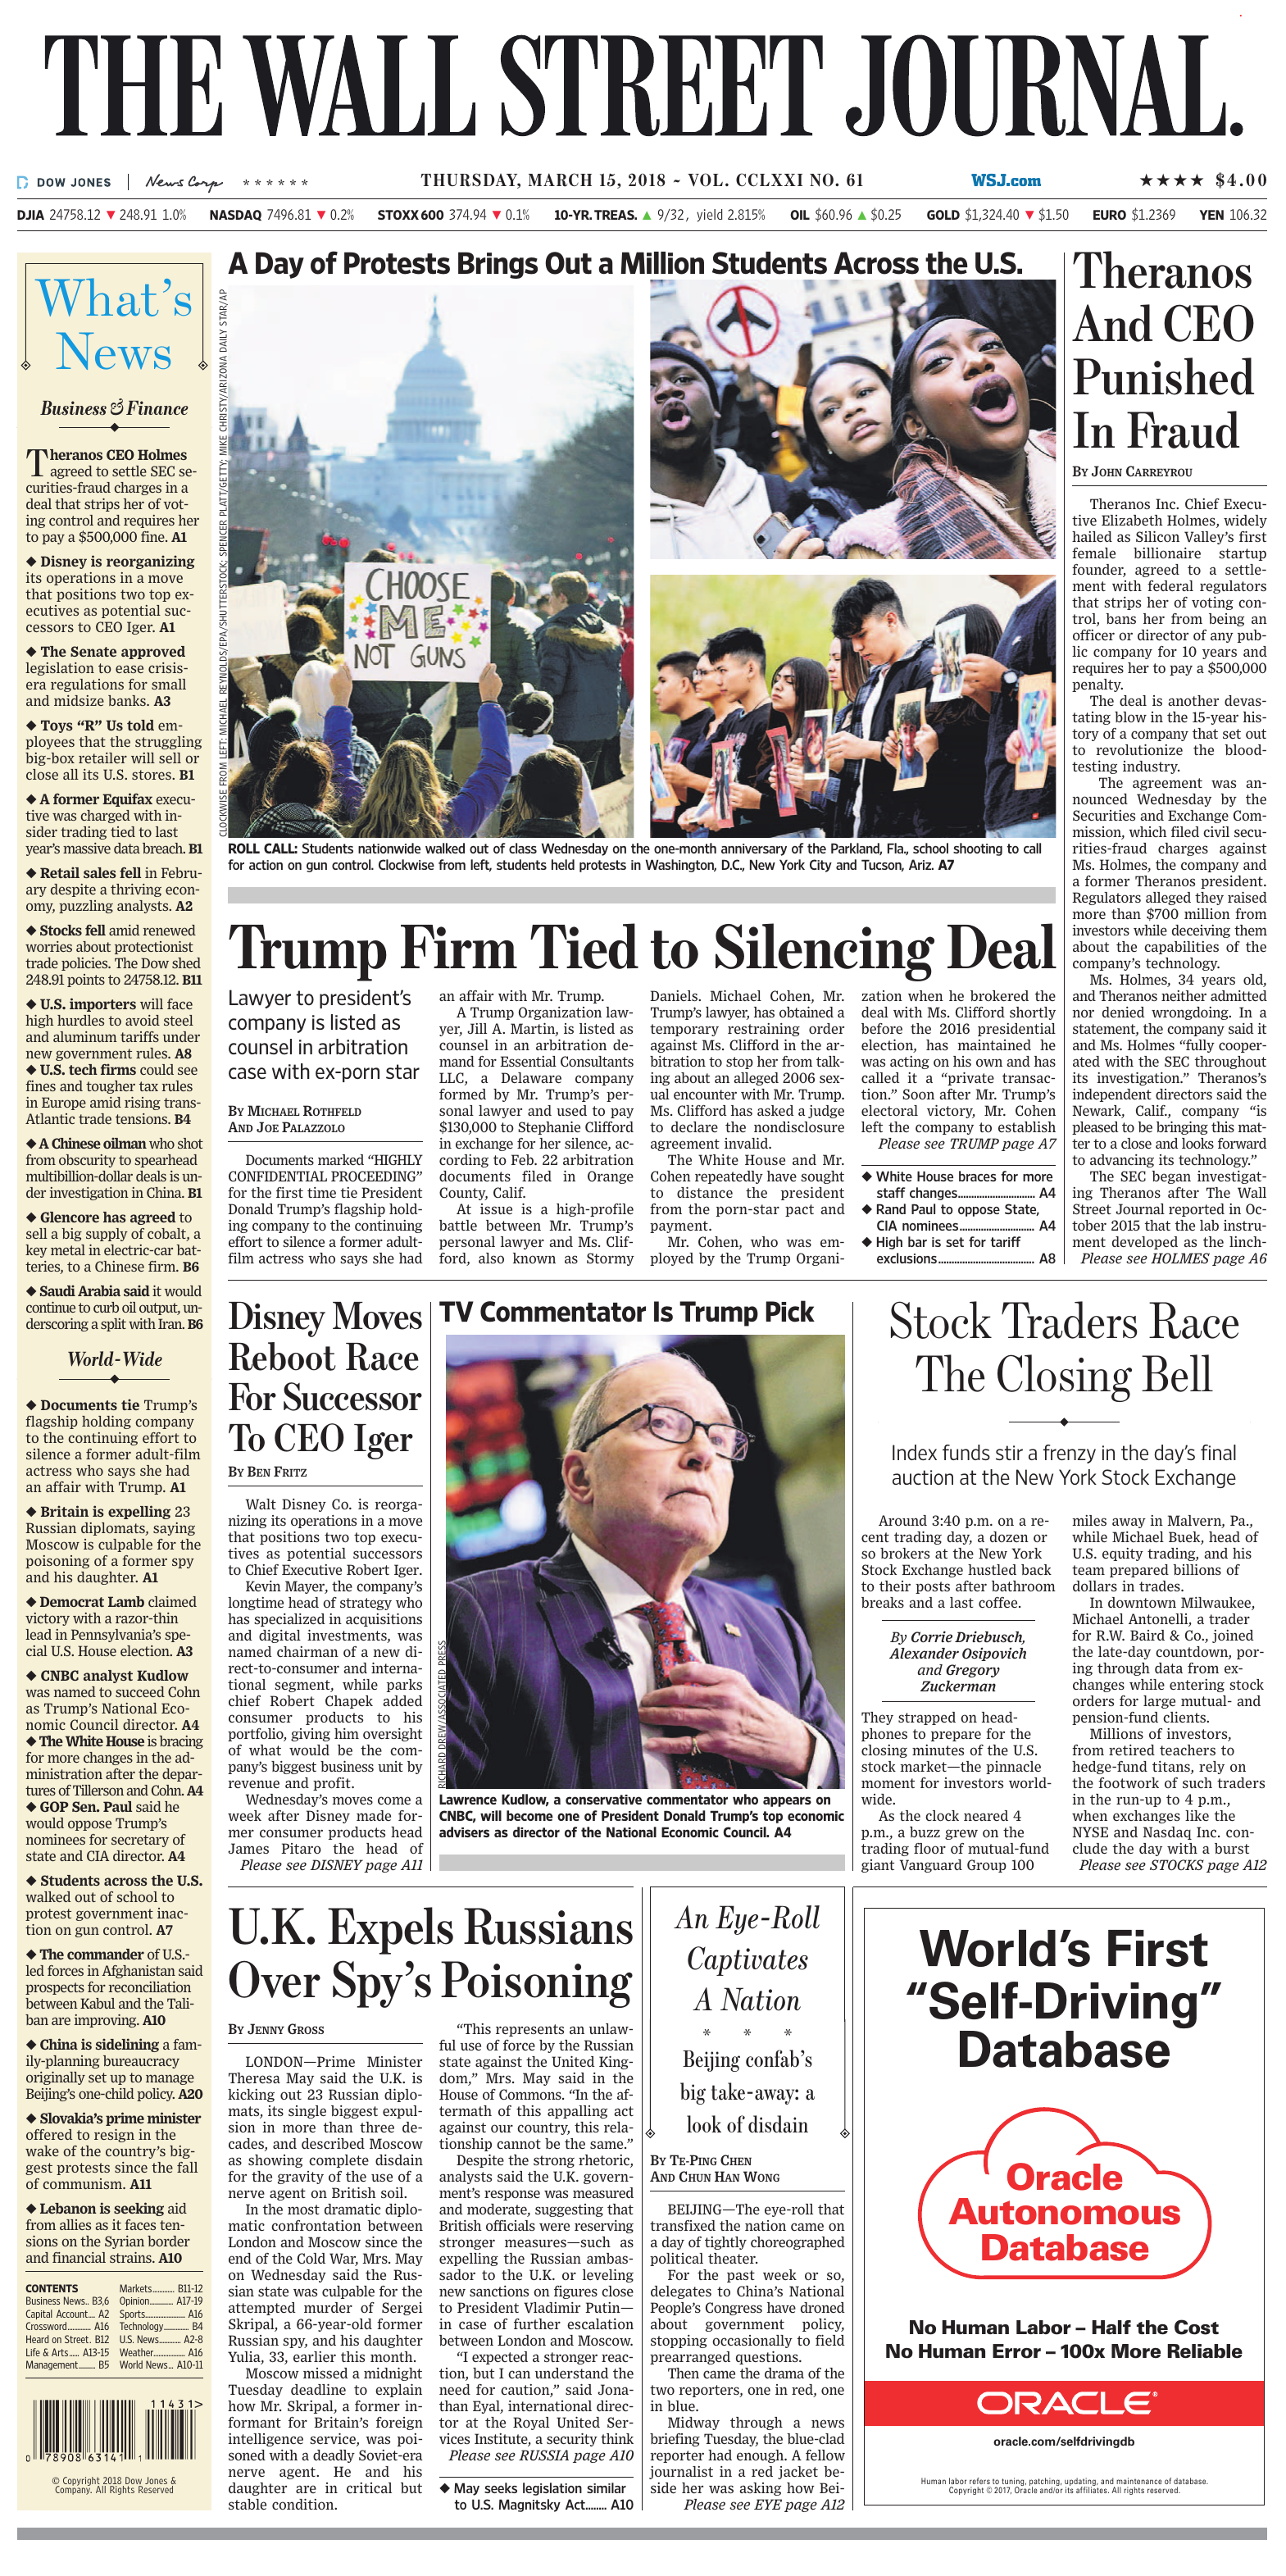 88d7af5ea The Wall Street Journal - March 15, 2018